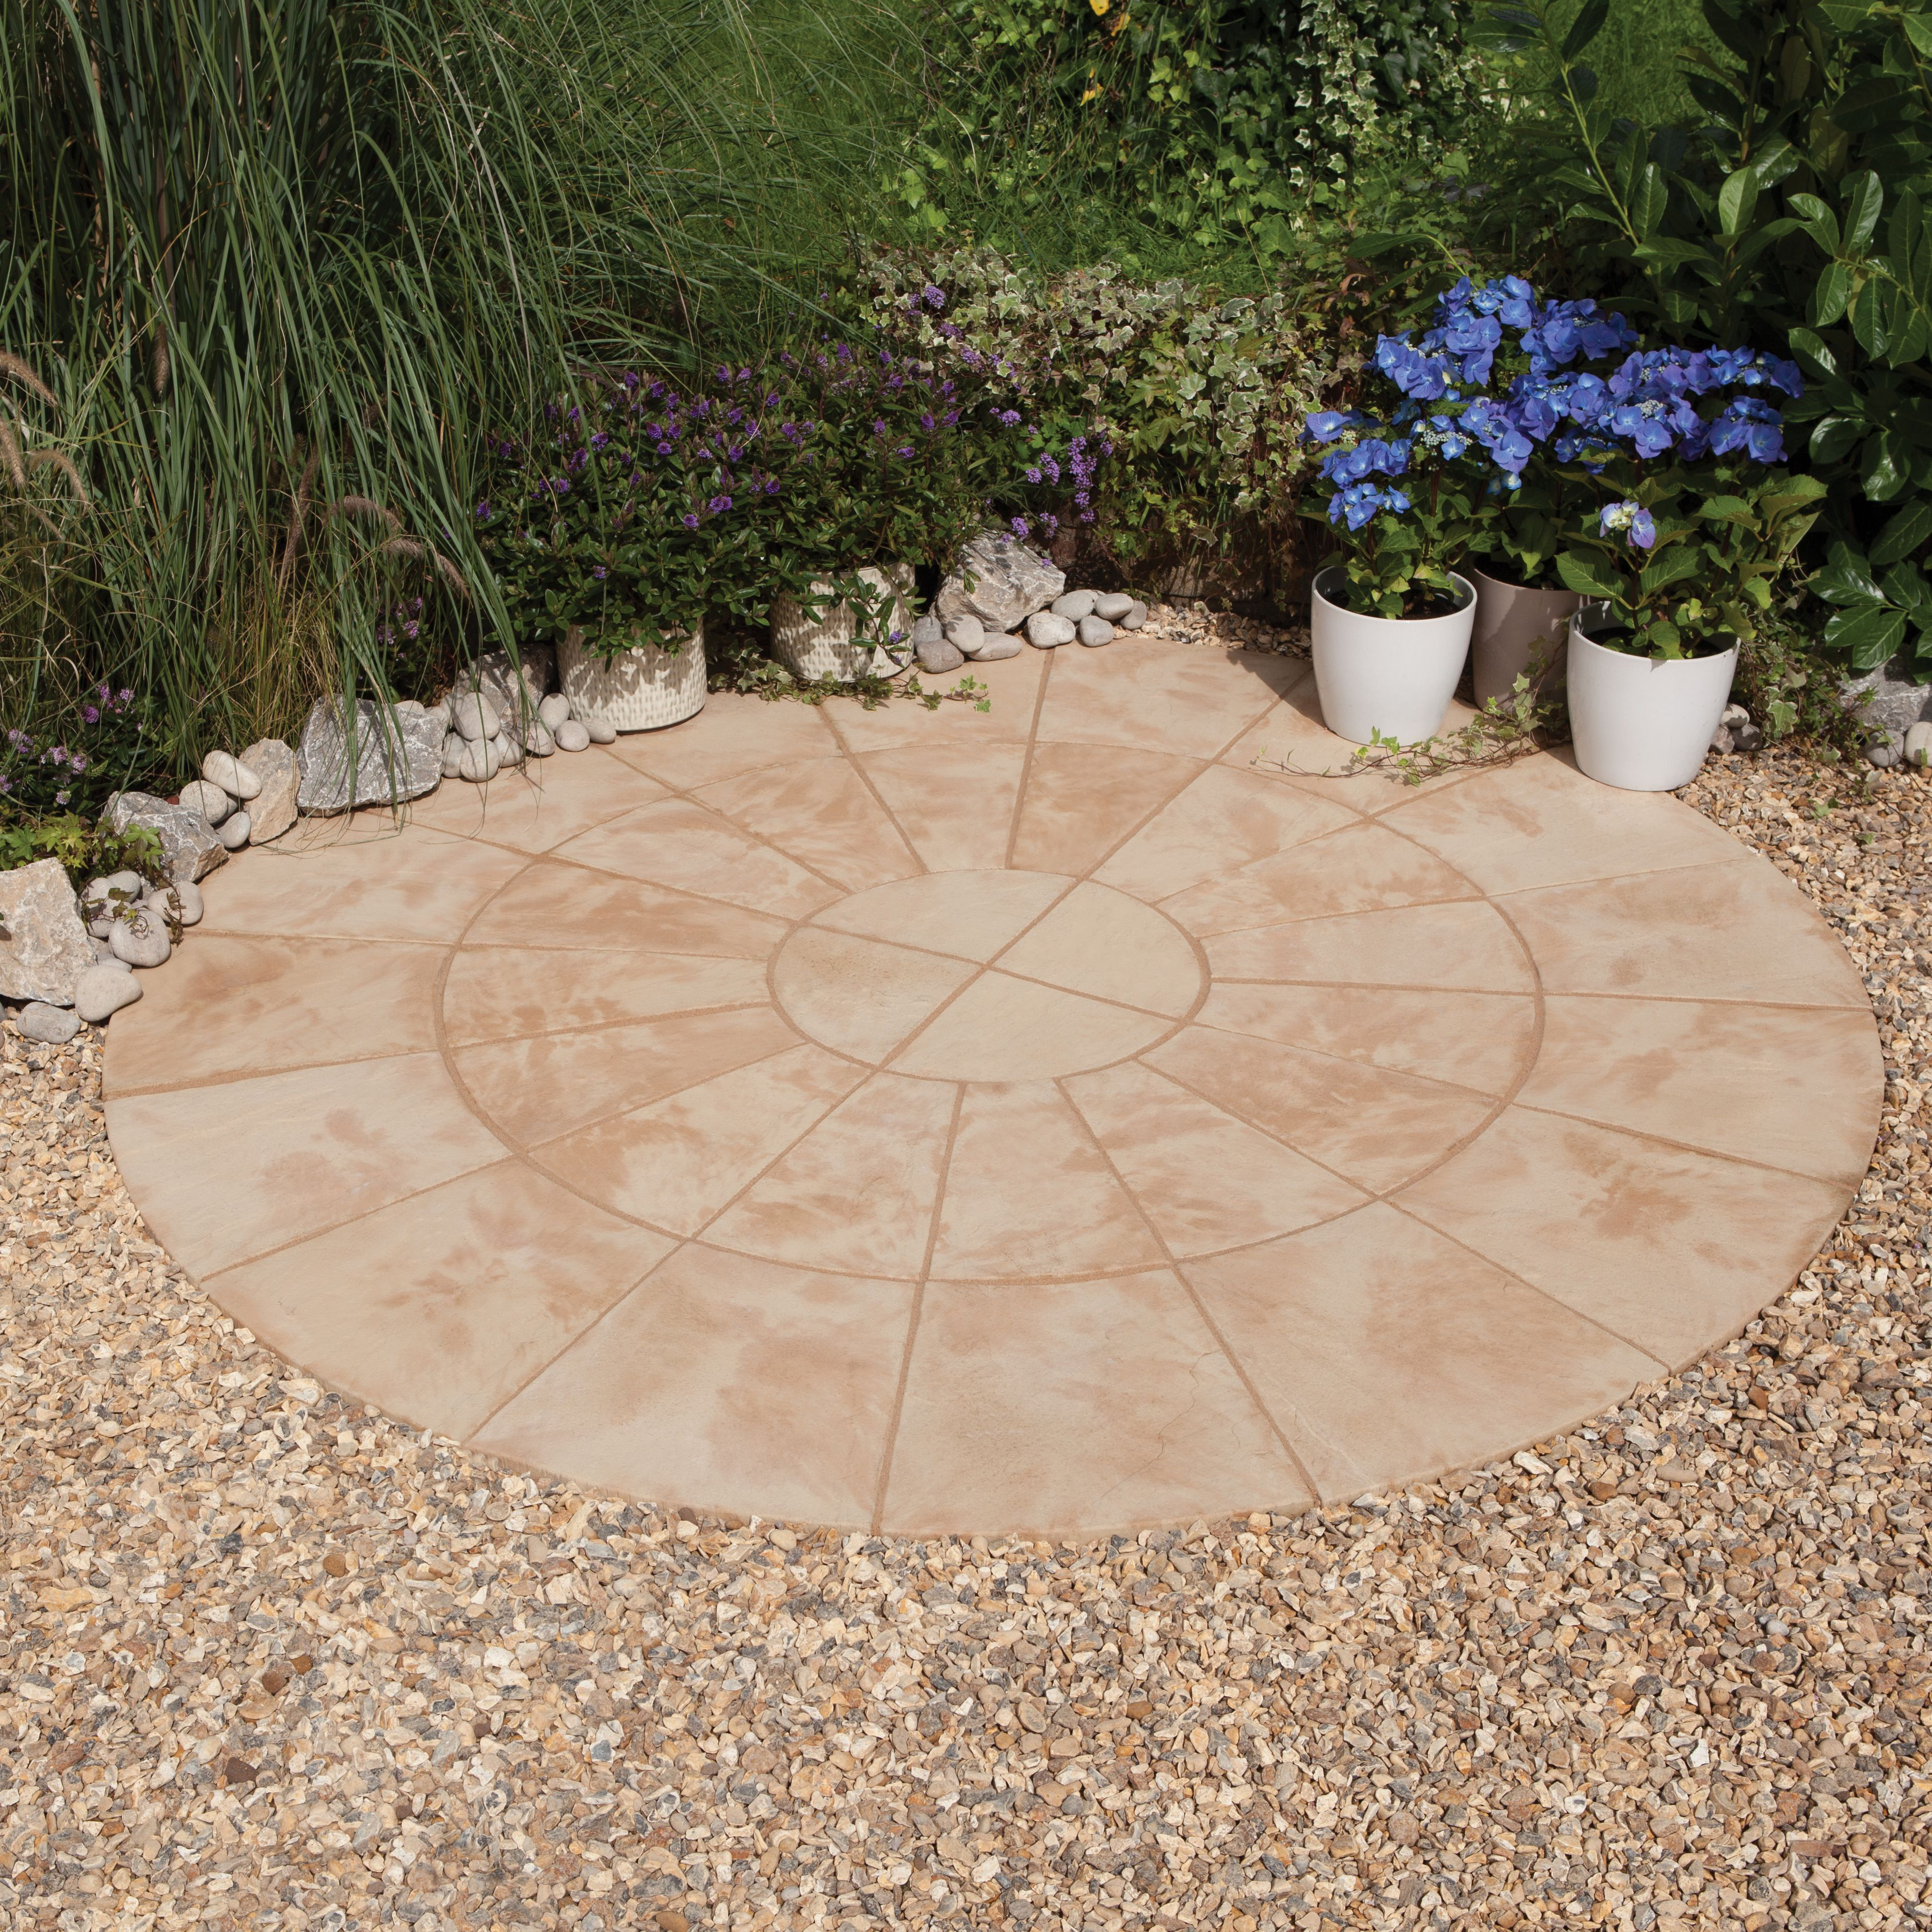 autumn cotswold old riven circle paving pack2 4m. Black Bedroom Furniture Sets. Home Design Ideas